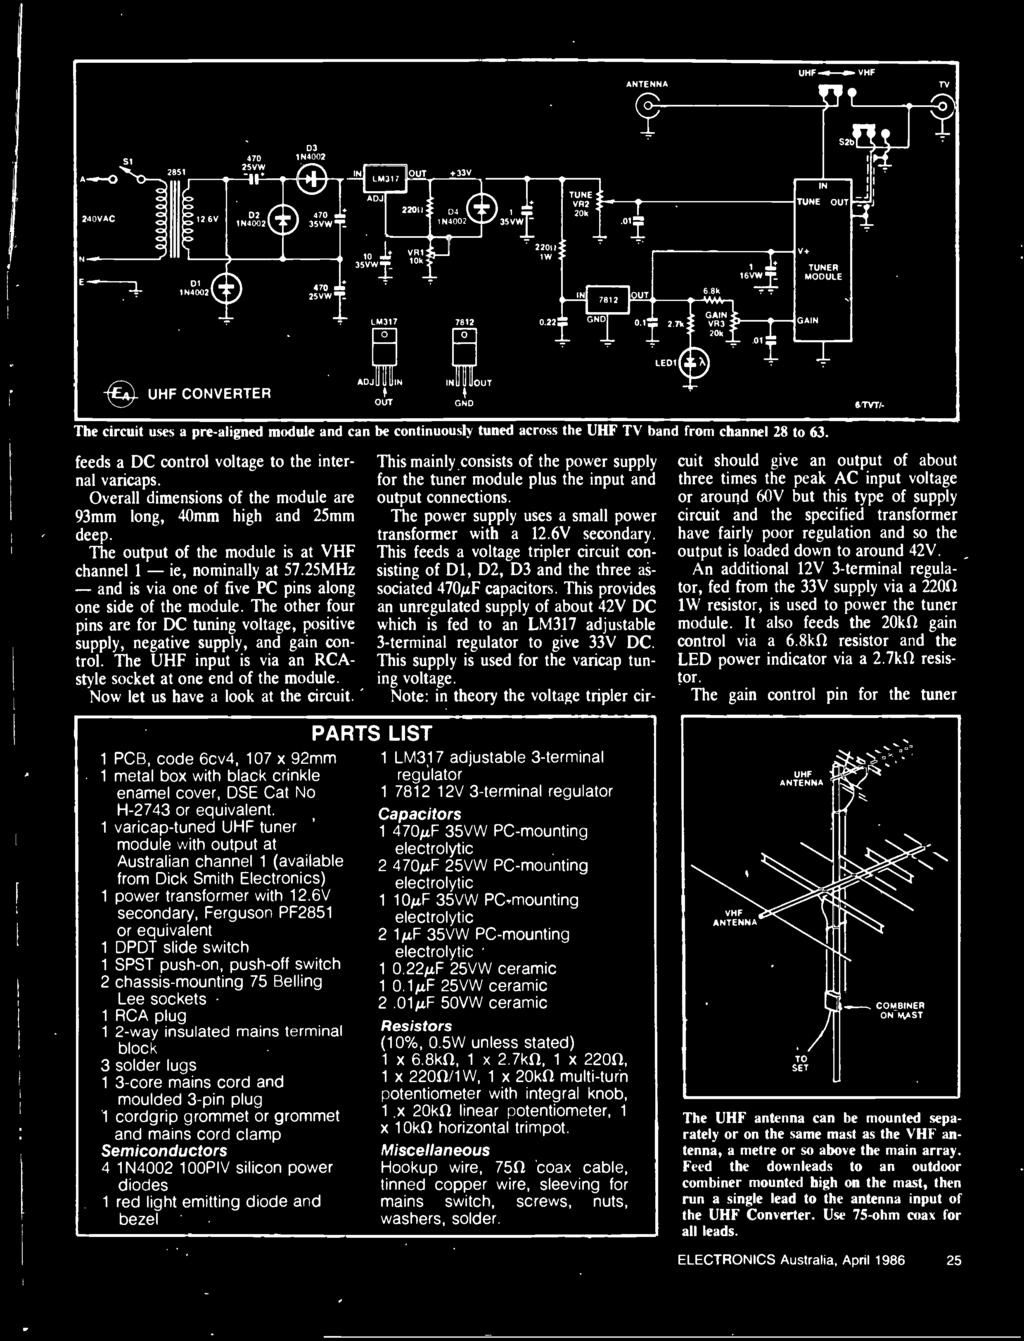 Australias Top Selling Electronics Magazine April 1986 Aust Timer 2001 Mitsubishi Galant Starter Relay Location 555 Circuits The Uhf Input Is Via An Rca Style Socket At One End Of Module